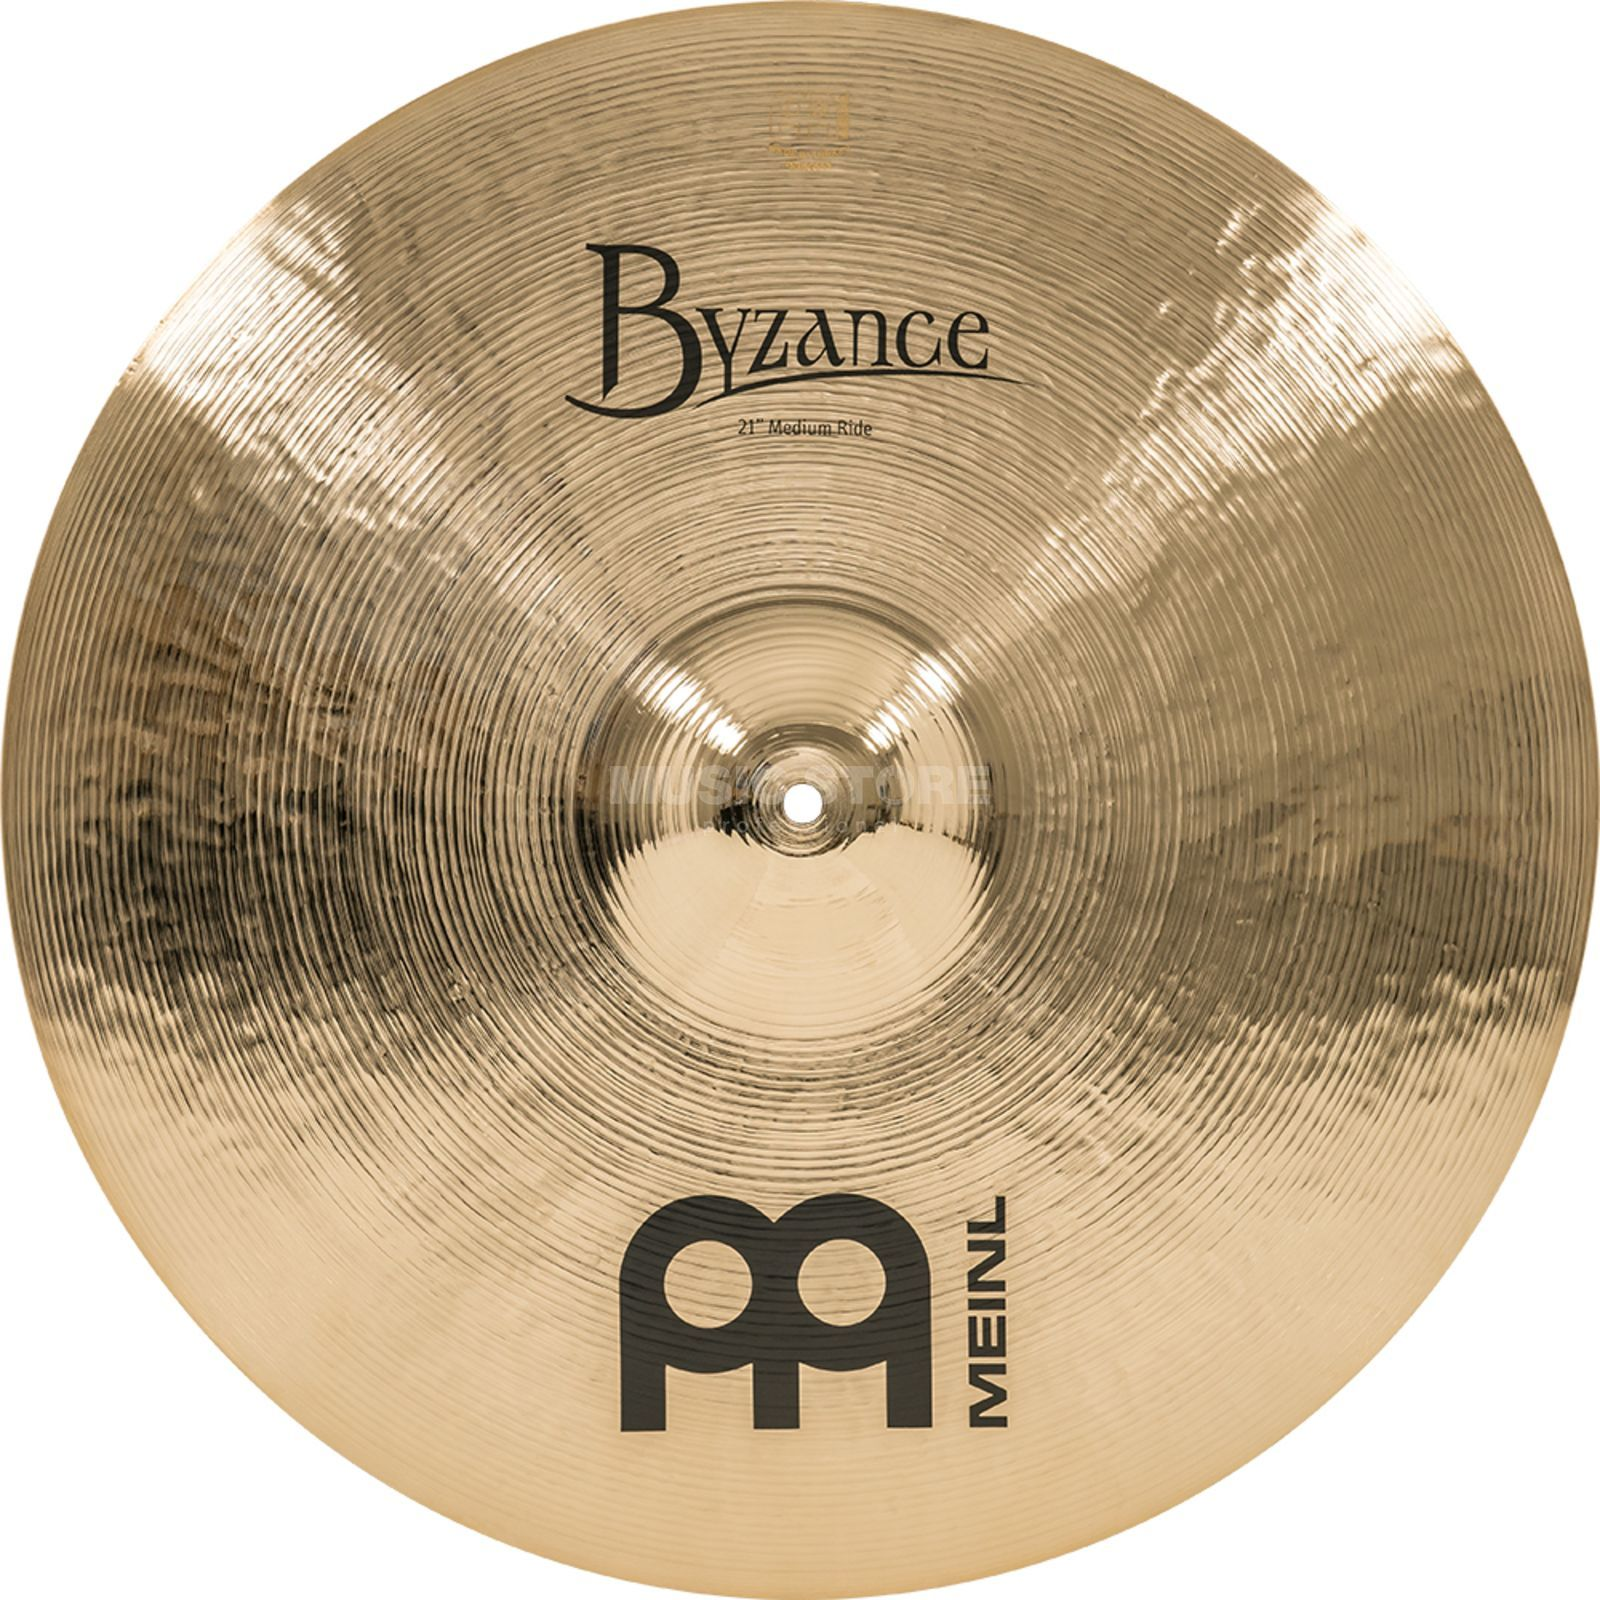 "Meinl Byzance Medium Ride 21"", B21MR-B, Brilliant Finish Produktbillede"